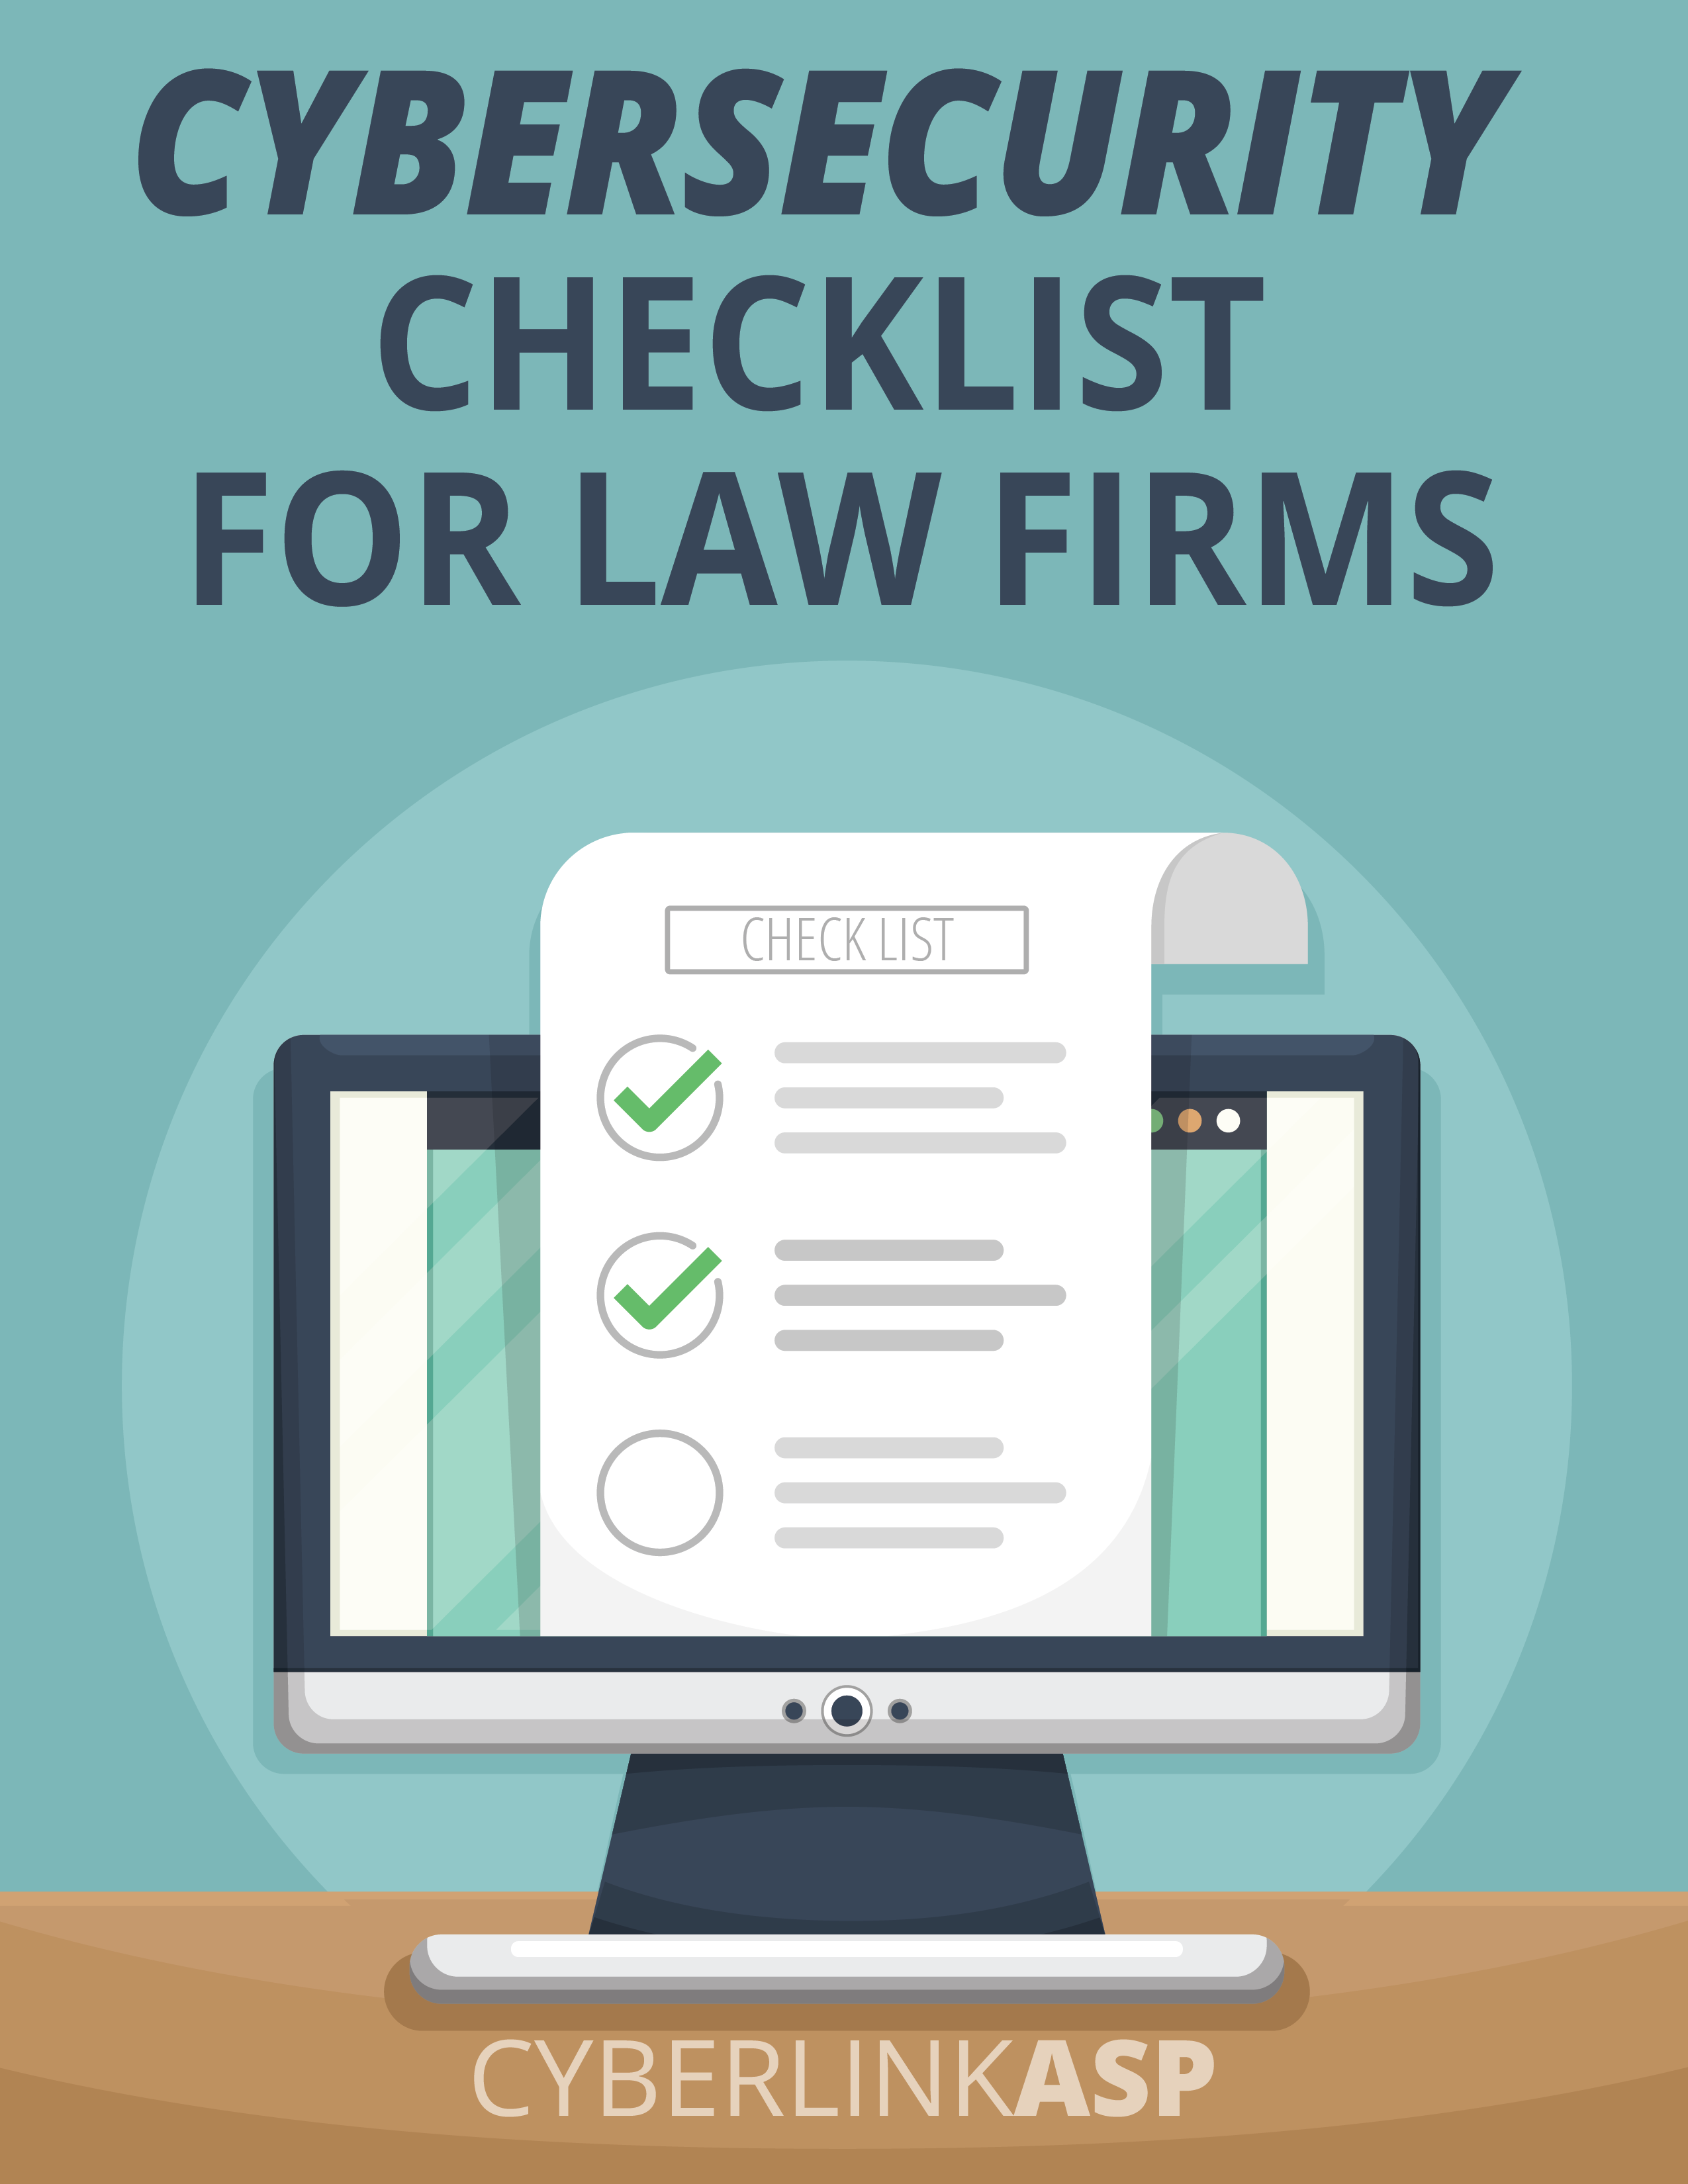 Cybersecurity Checklist For Law Firms Thank You Cyberlinkasp